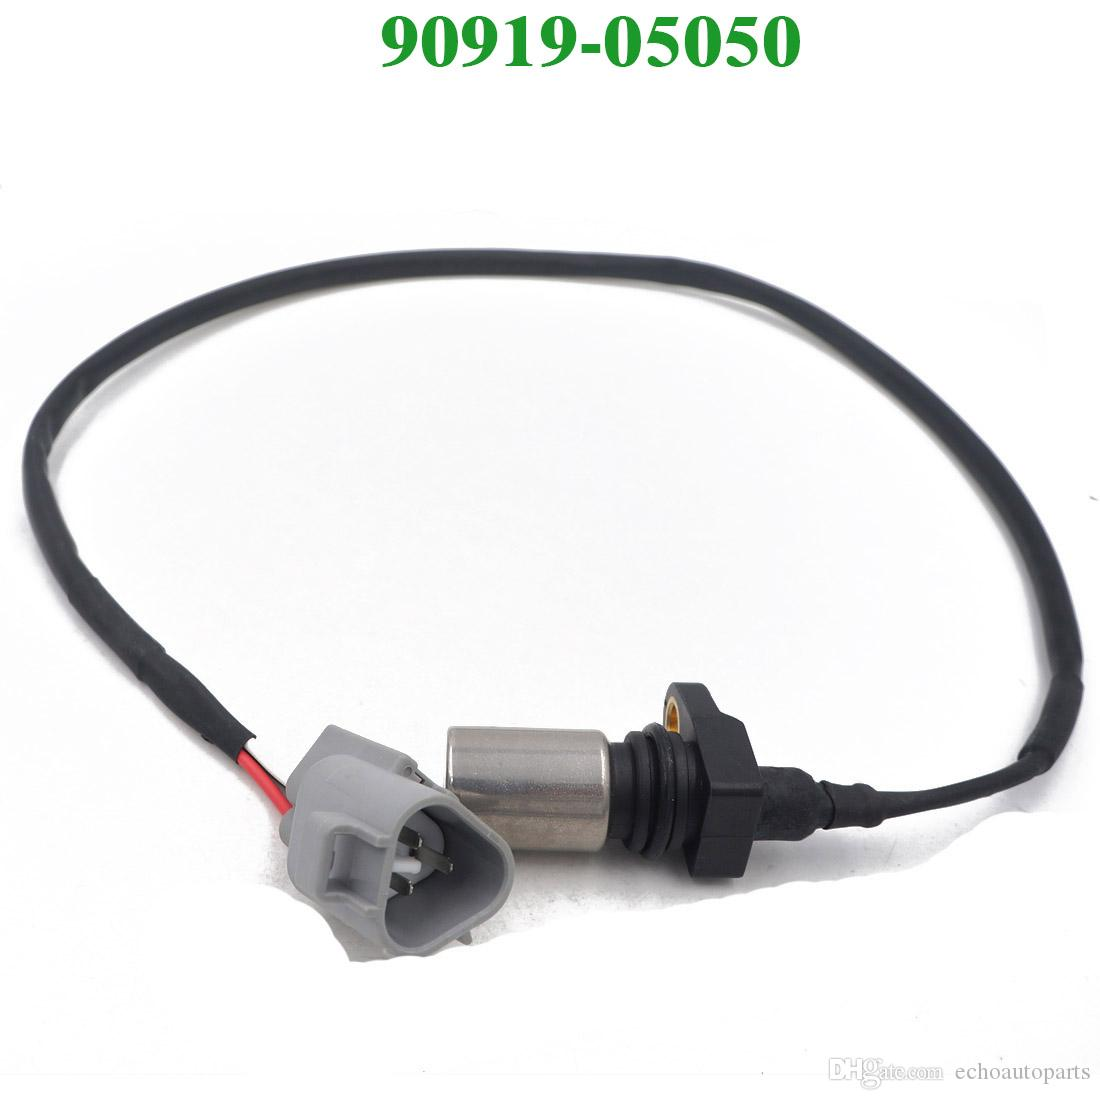 Throttle Position Sensor Toyota Hilux: 2019 High Qaulity 90919 05050 9091905050 Crankshaft